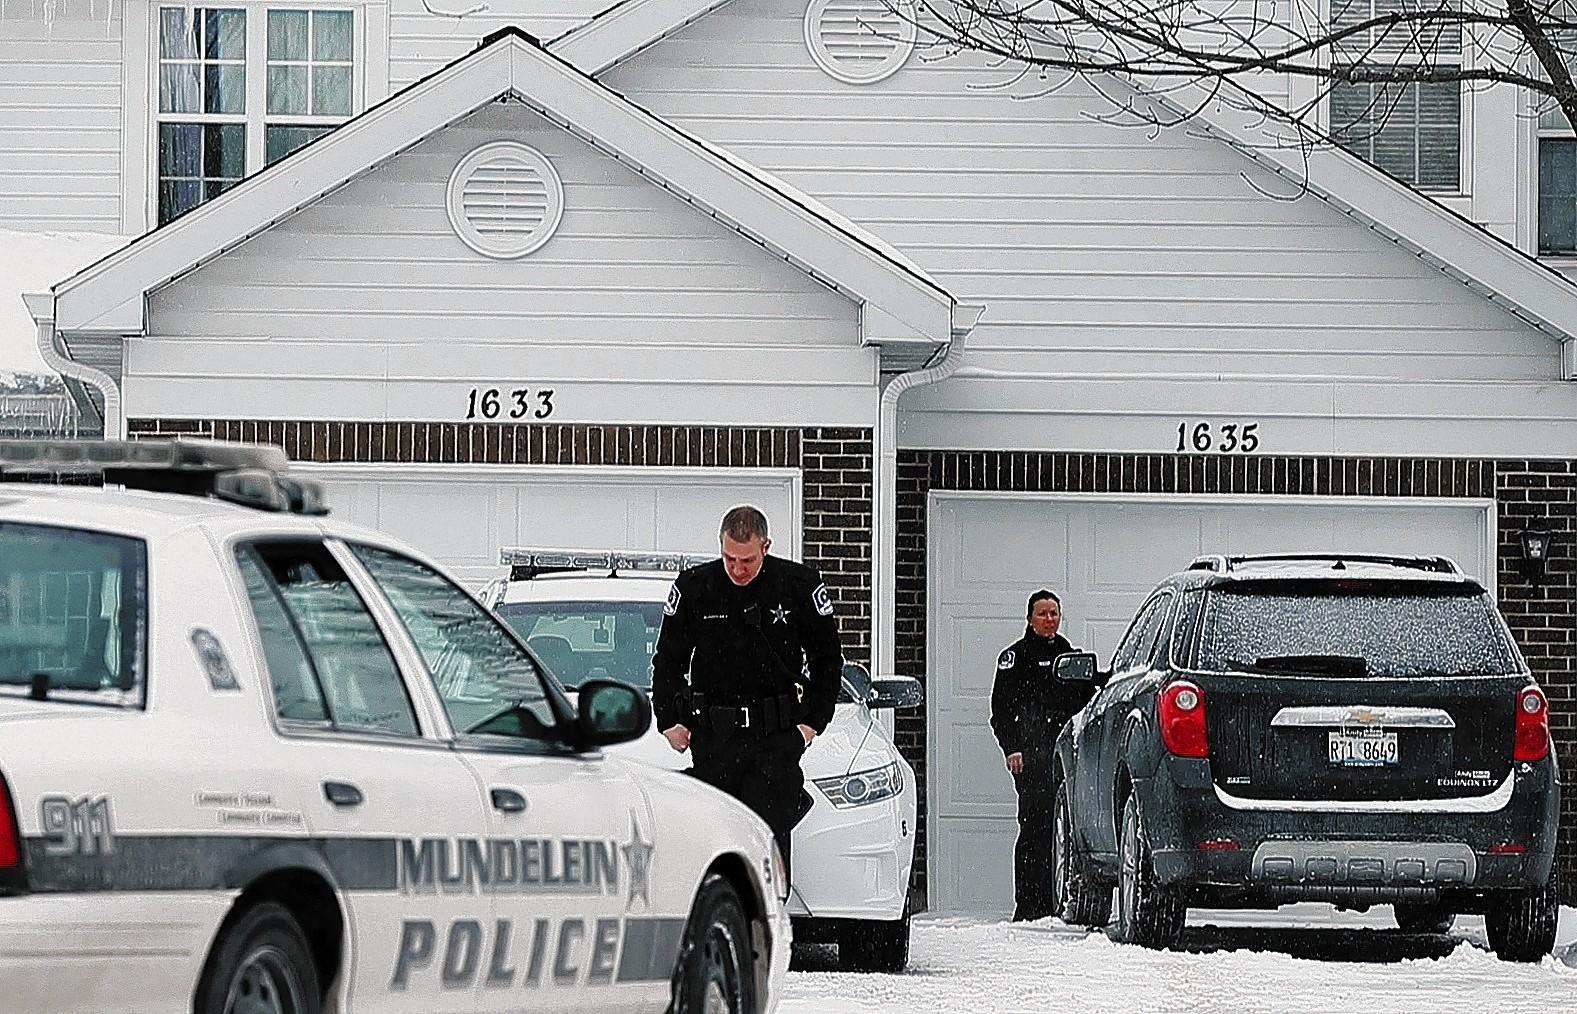 Mundelein police work Wednesday at the home where a girl identified as Dora Betancourt, 11, was killed Tuesday.